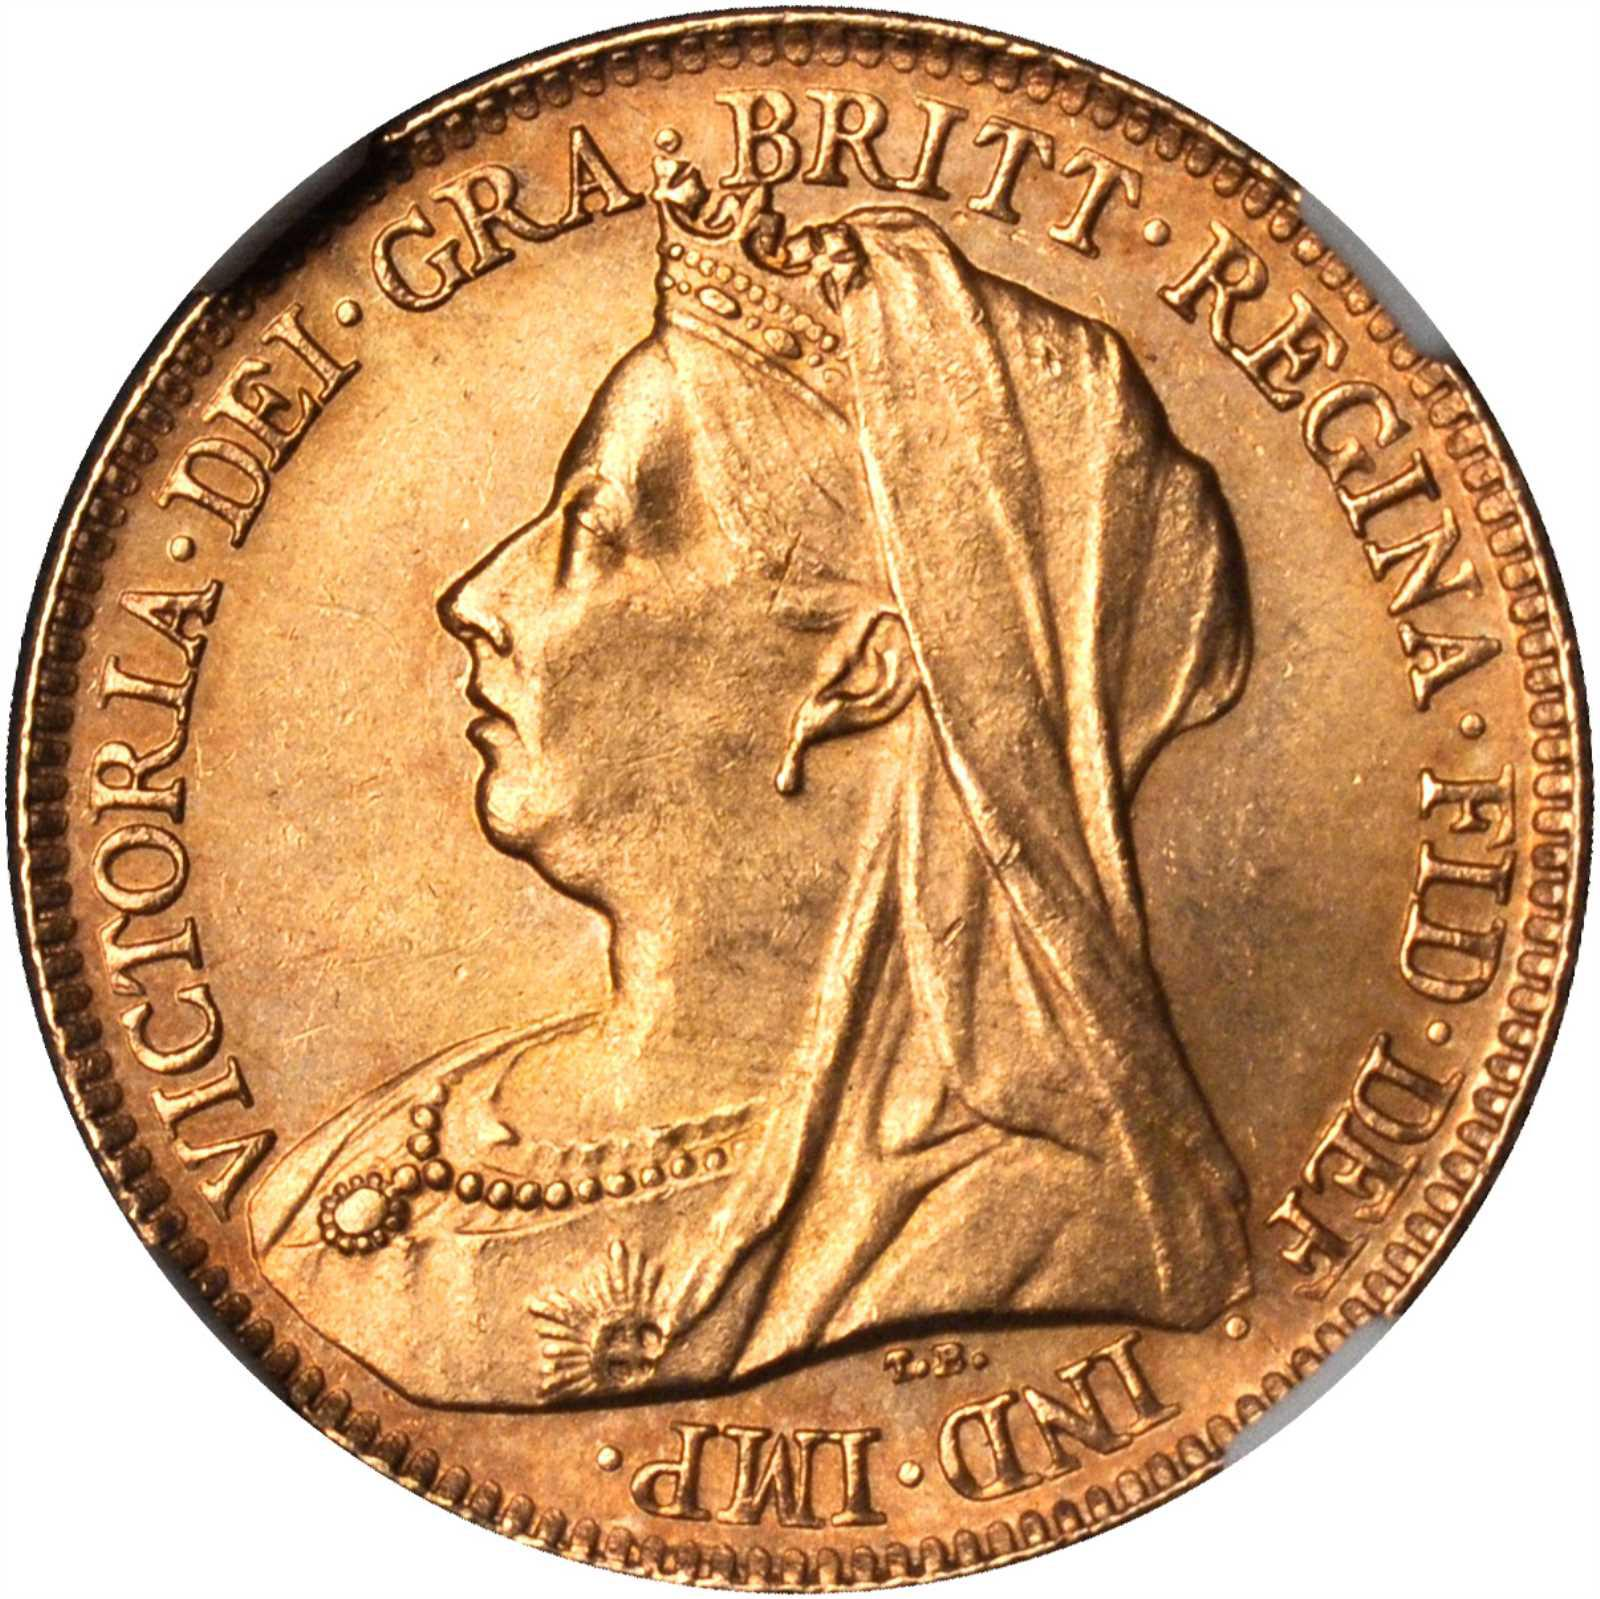 Half Sovereign (Pre-decimal): Photo Great Britain 1896 1/2 sovereign